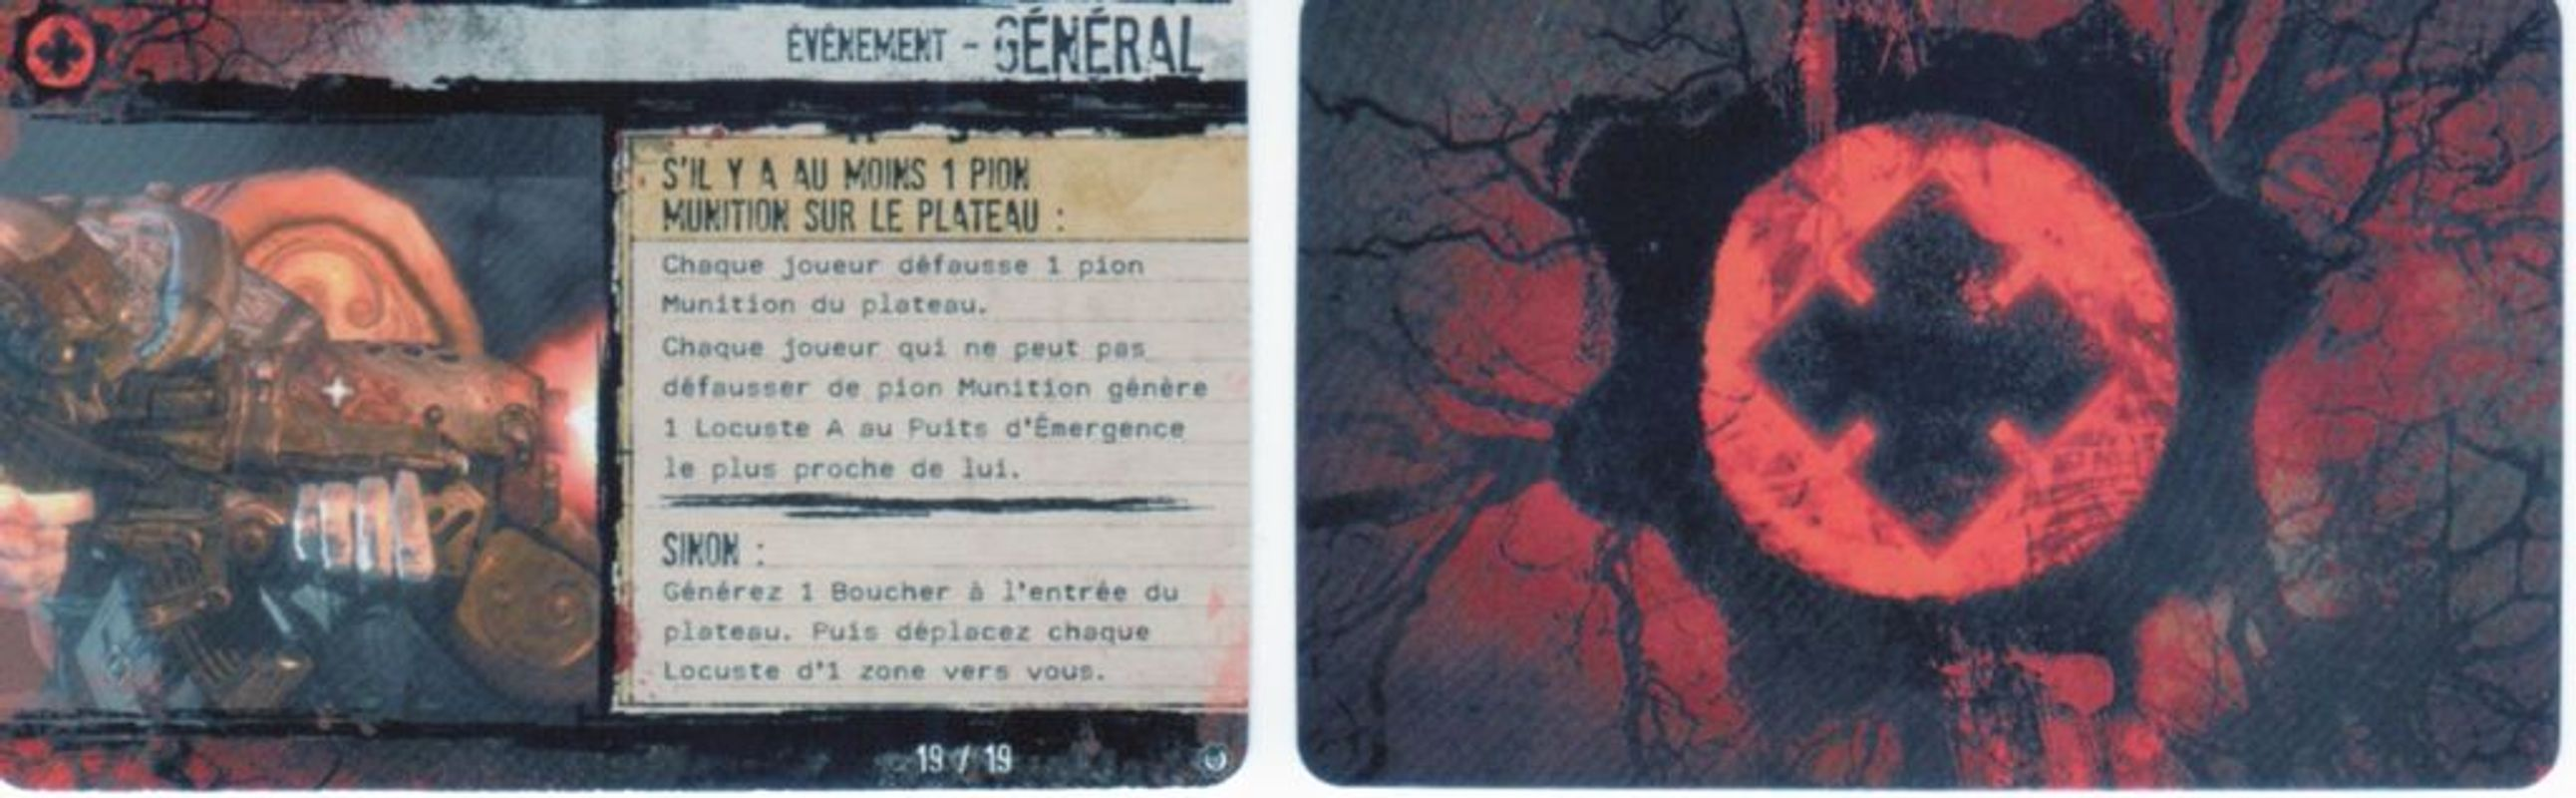 Gears of War: Mission Pack 1 cards